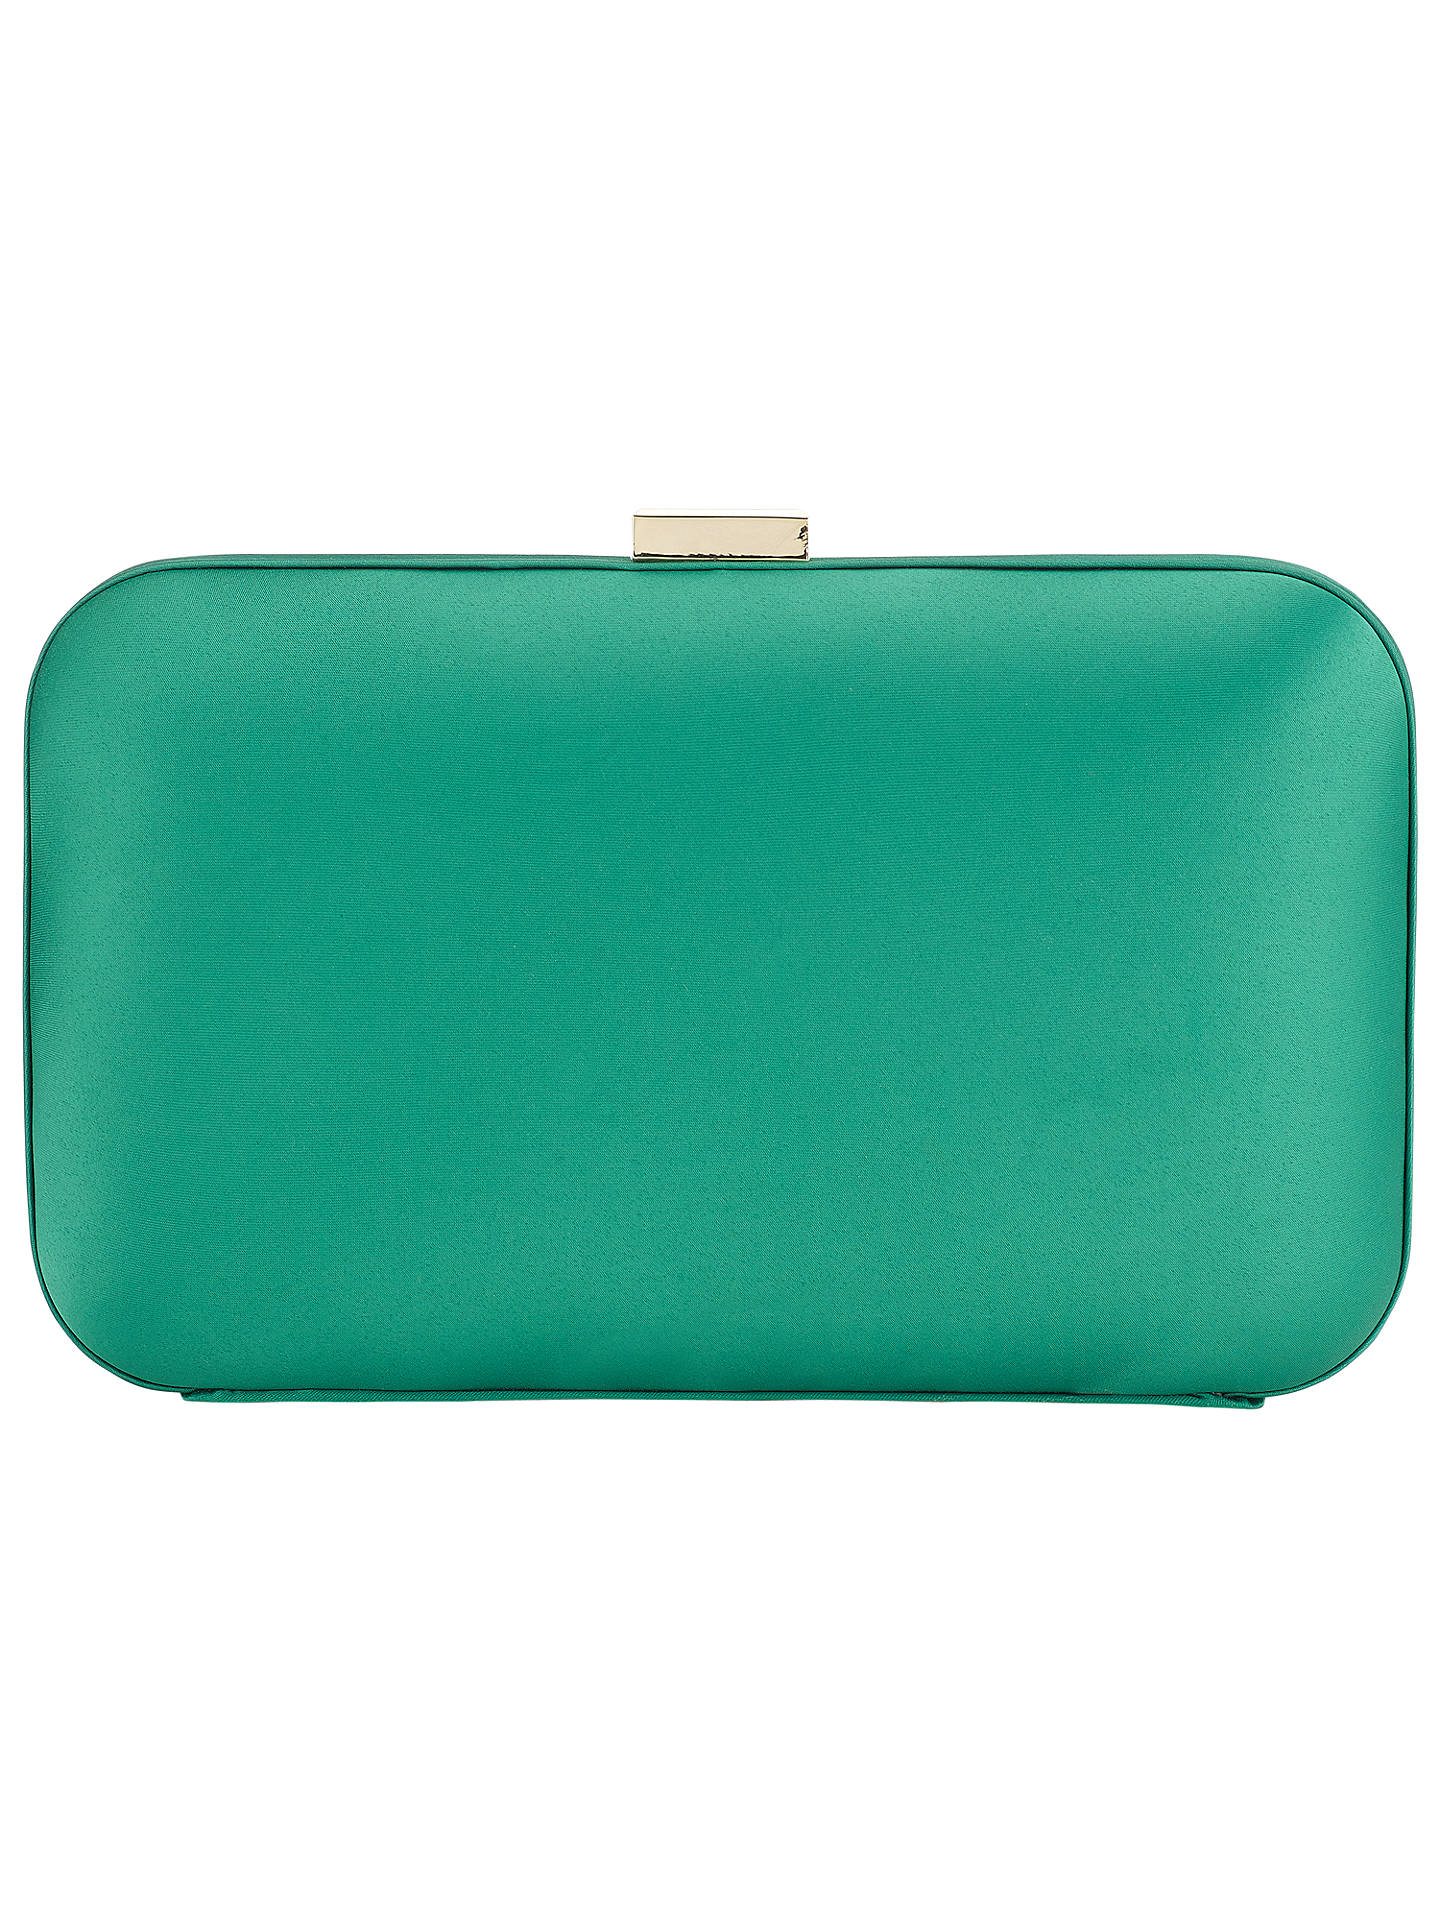 Buy John Lewis Rebecca Box Clutch Bag, Green Online at johnlewis.com